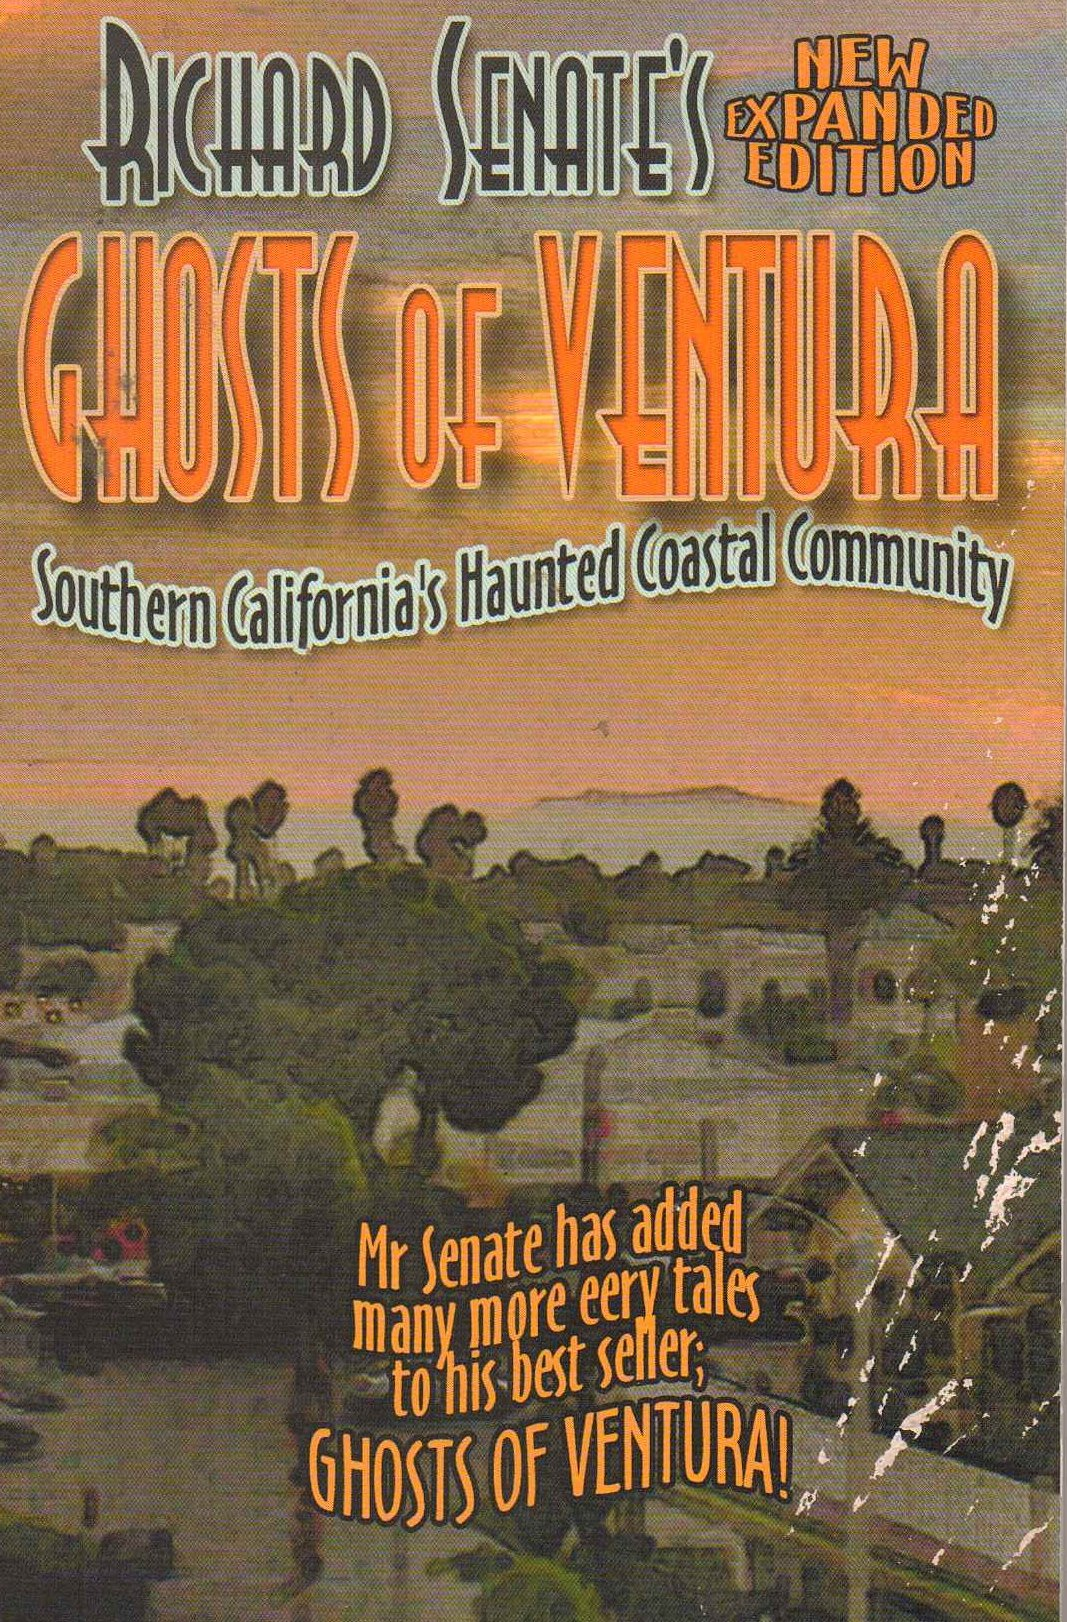 Richard Senate's Ghosts of Ventura